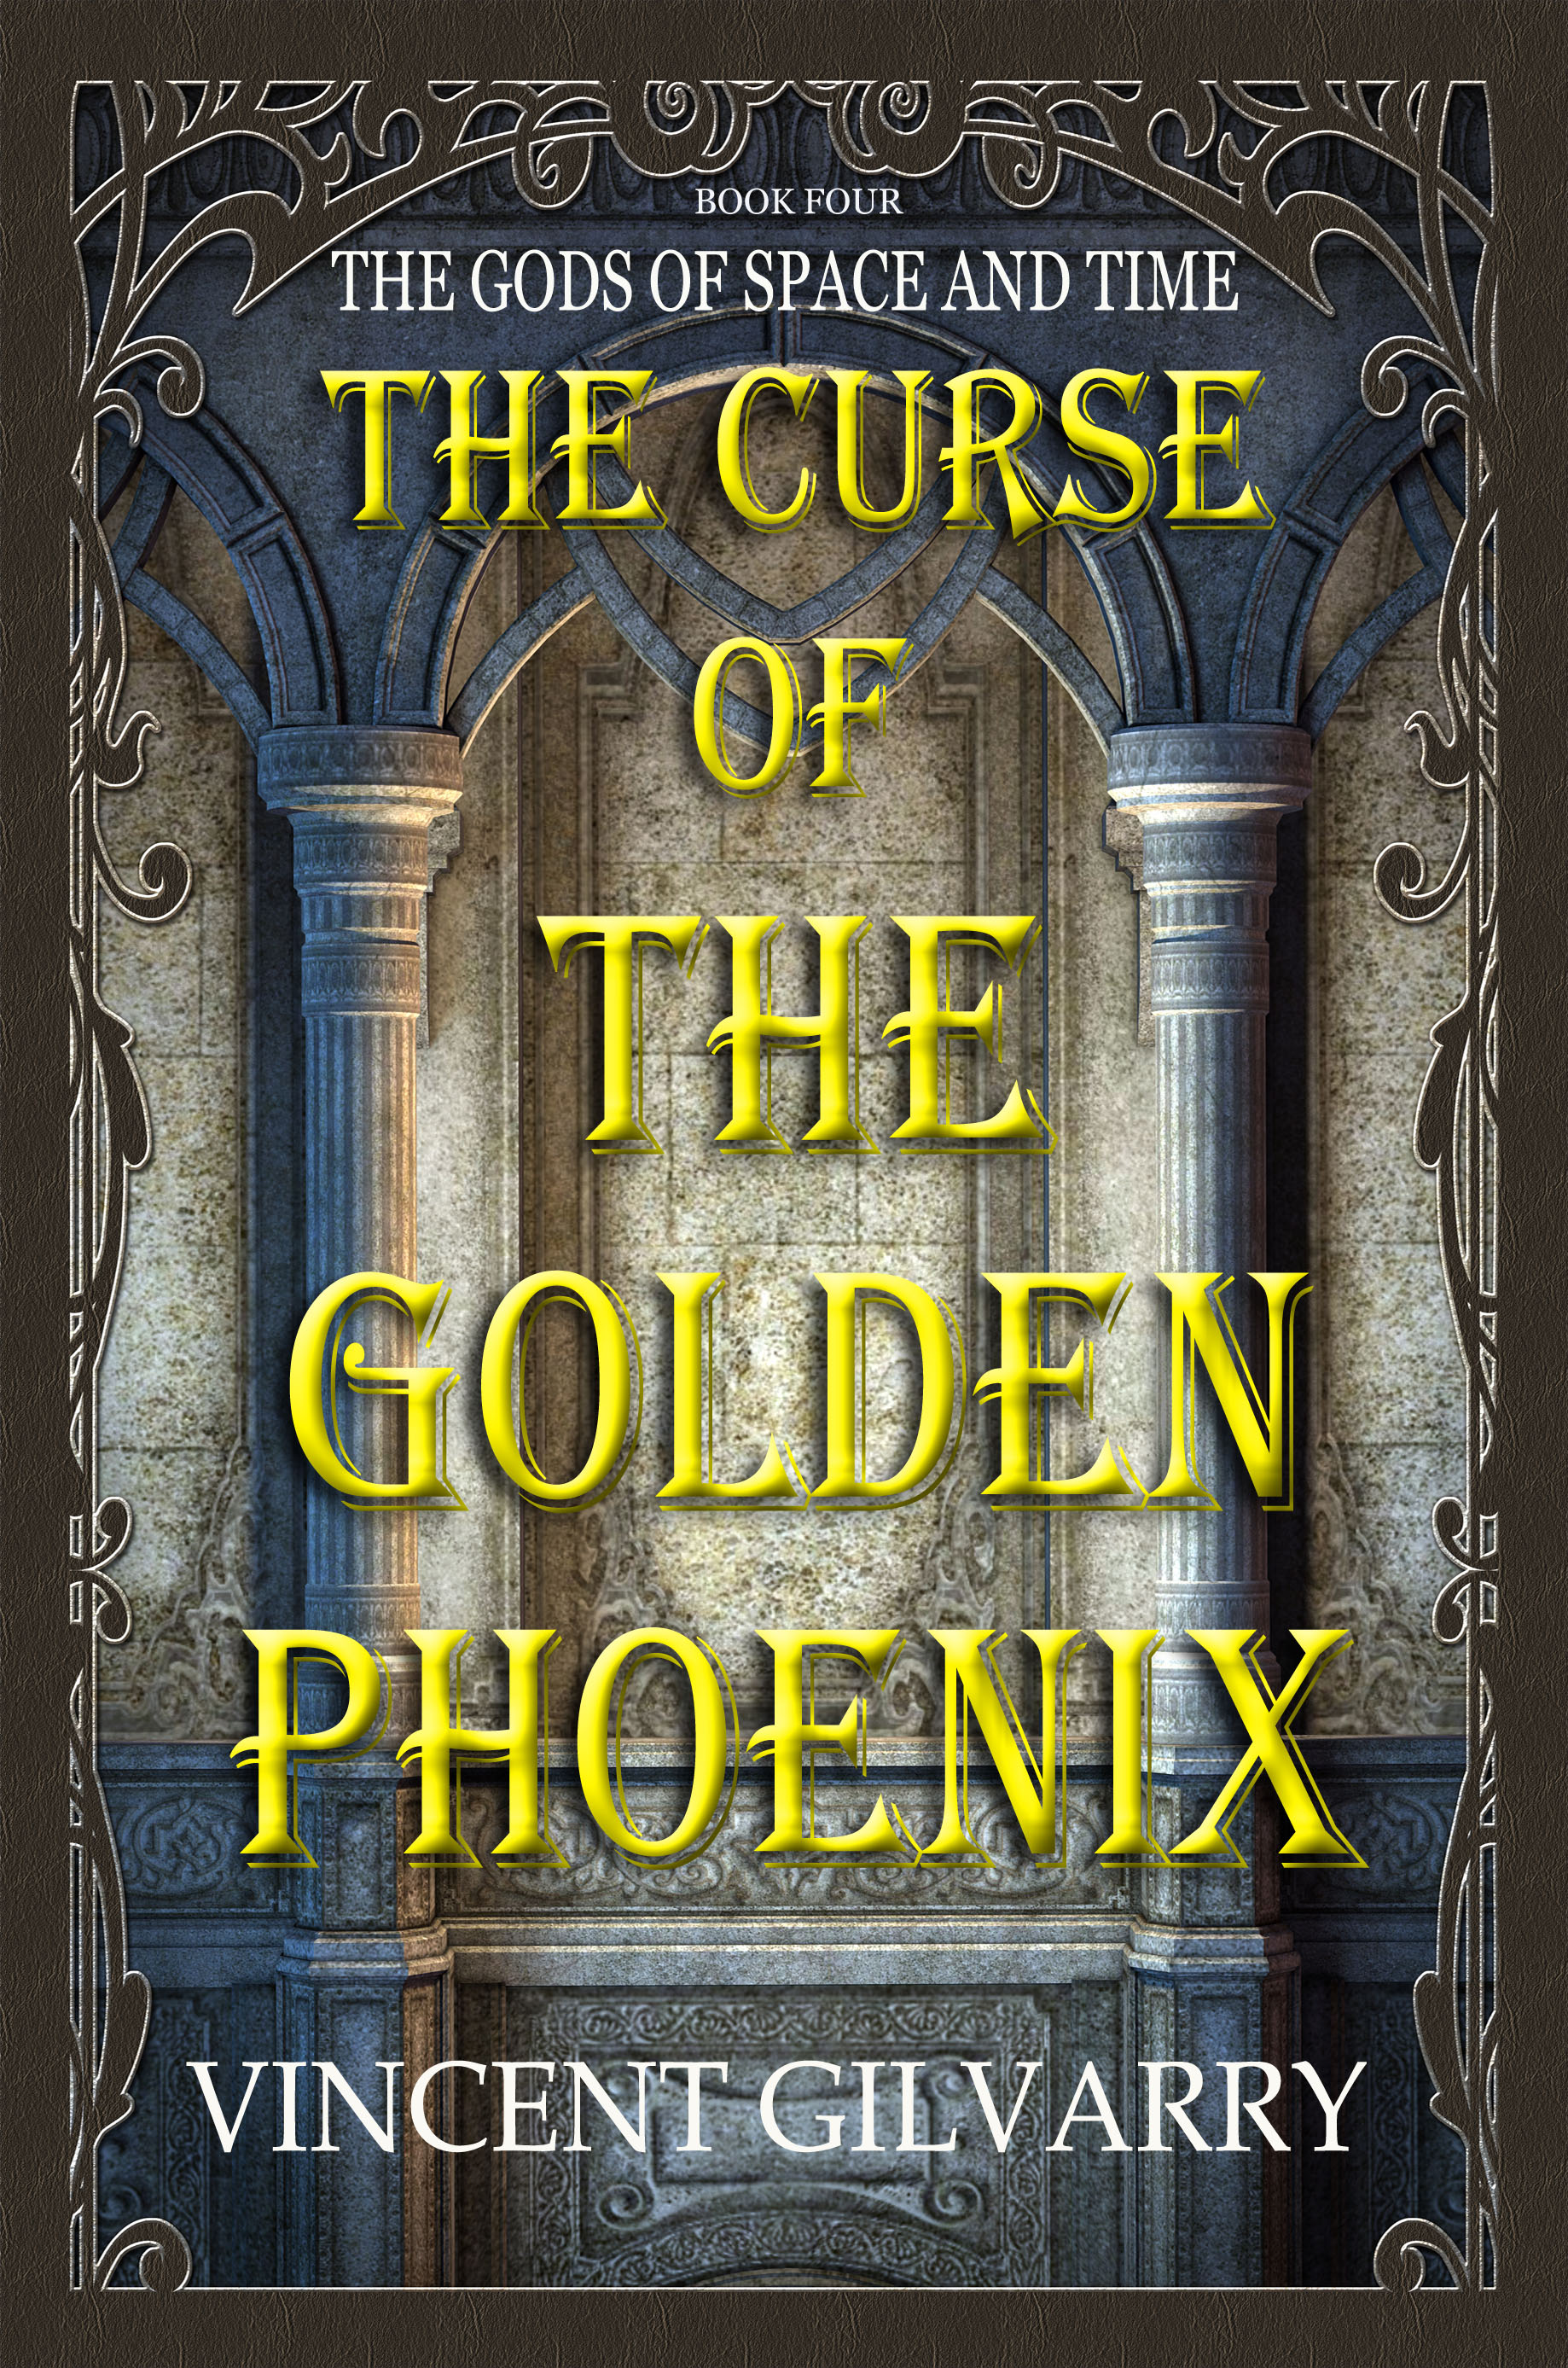 THE CURSE OF THE GOLDEN PHOENIX